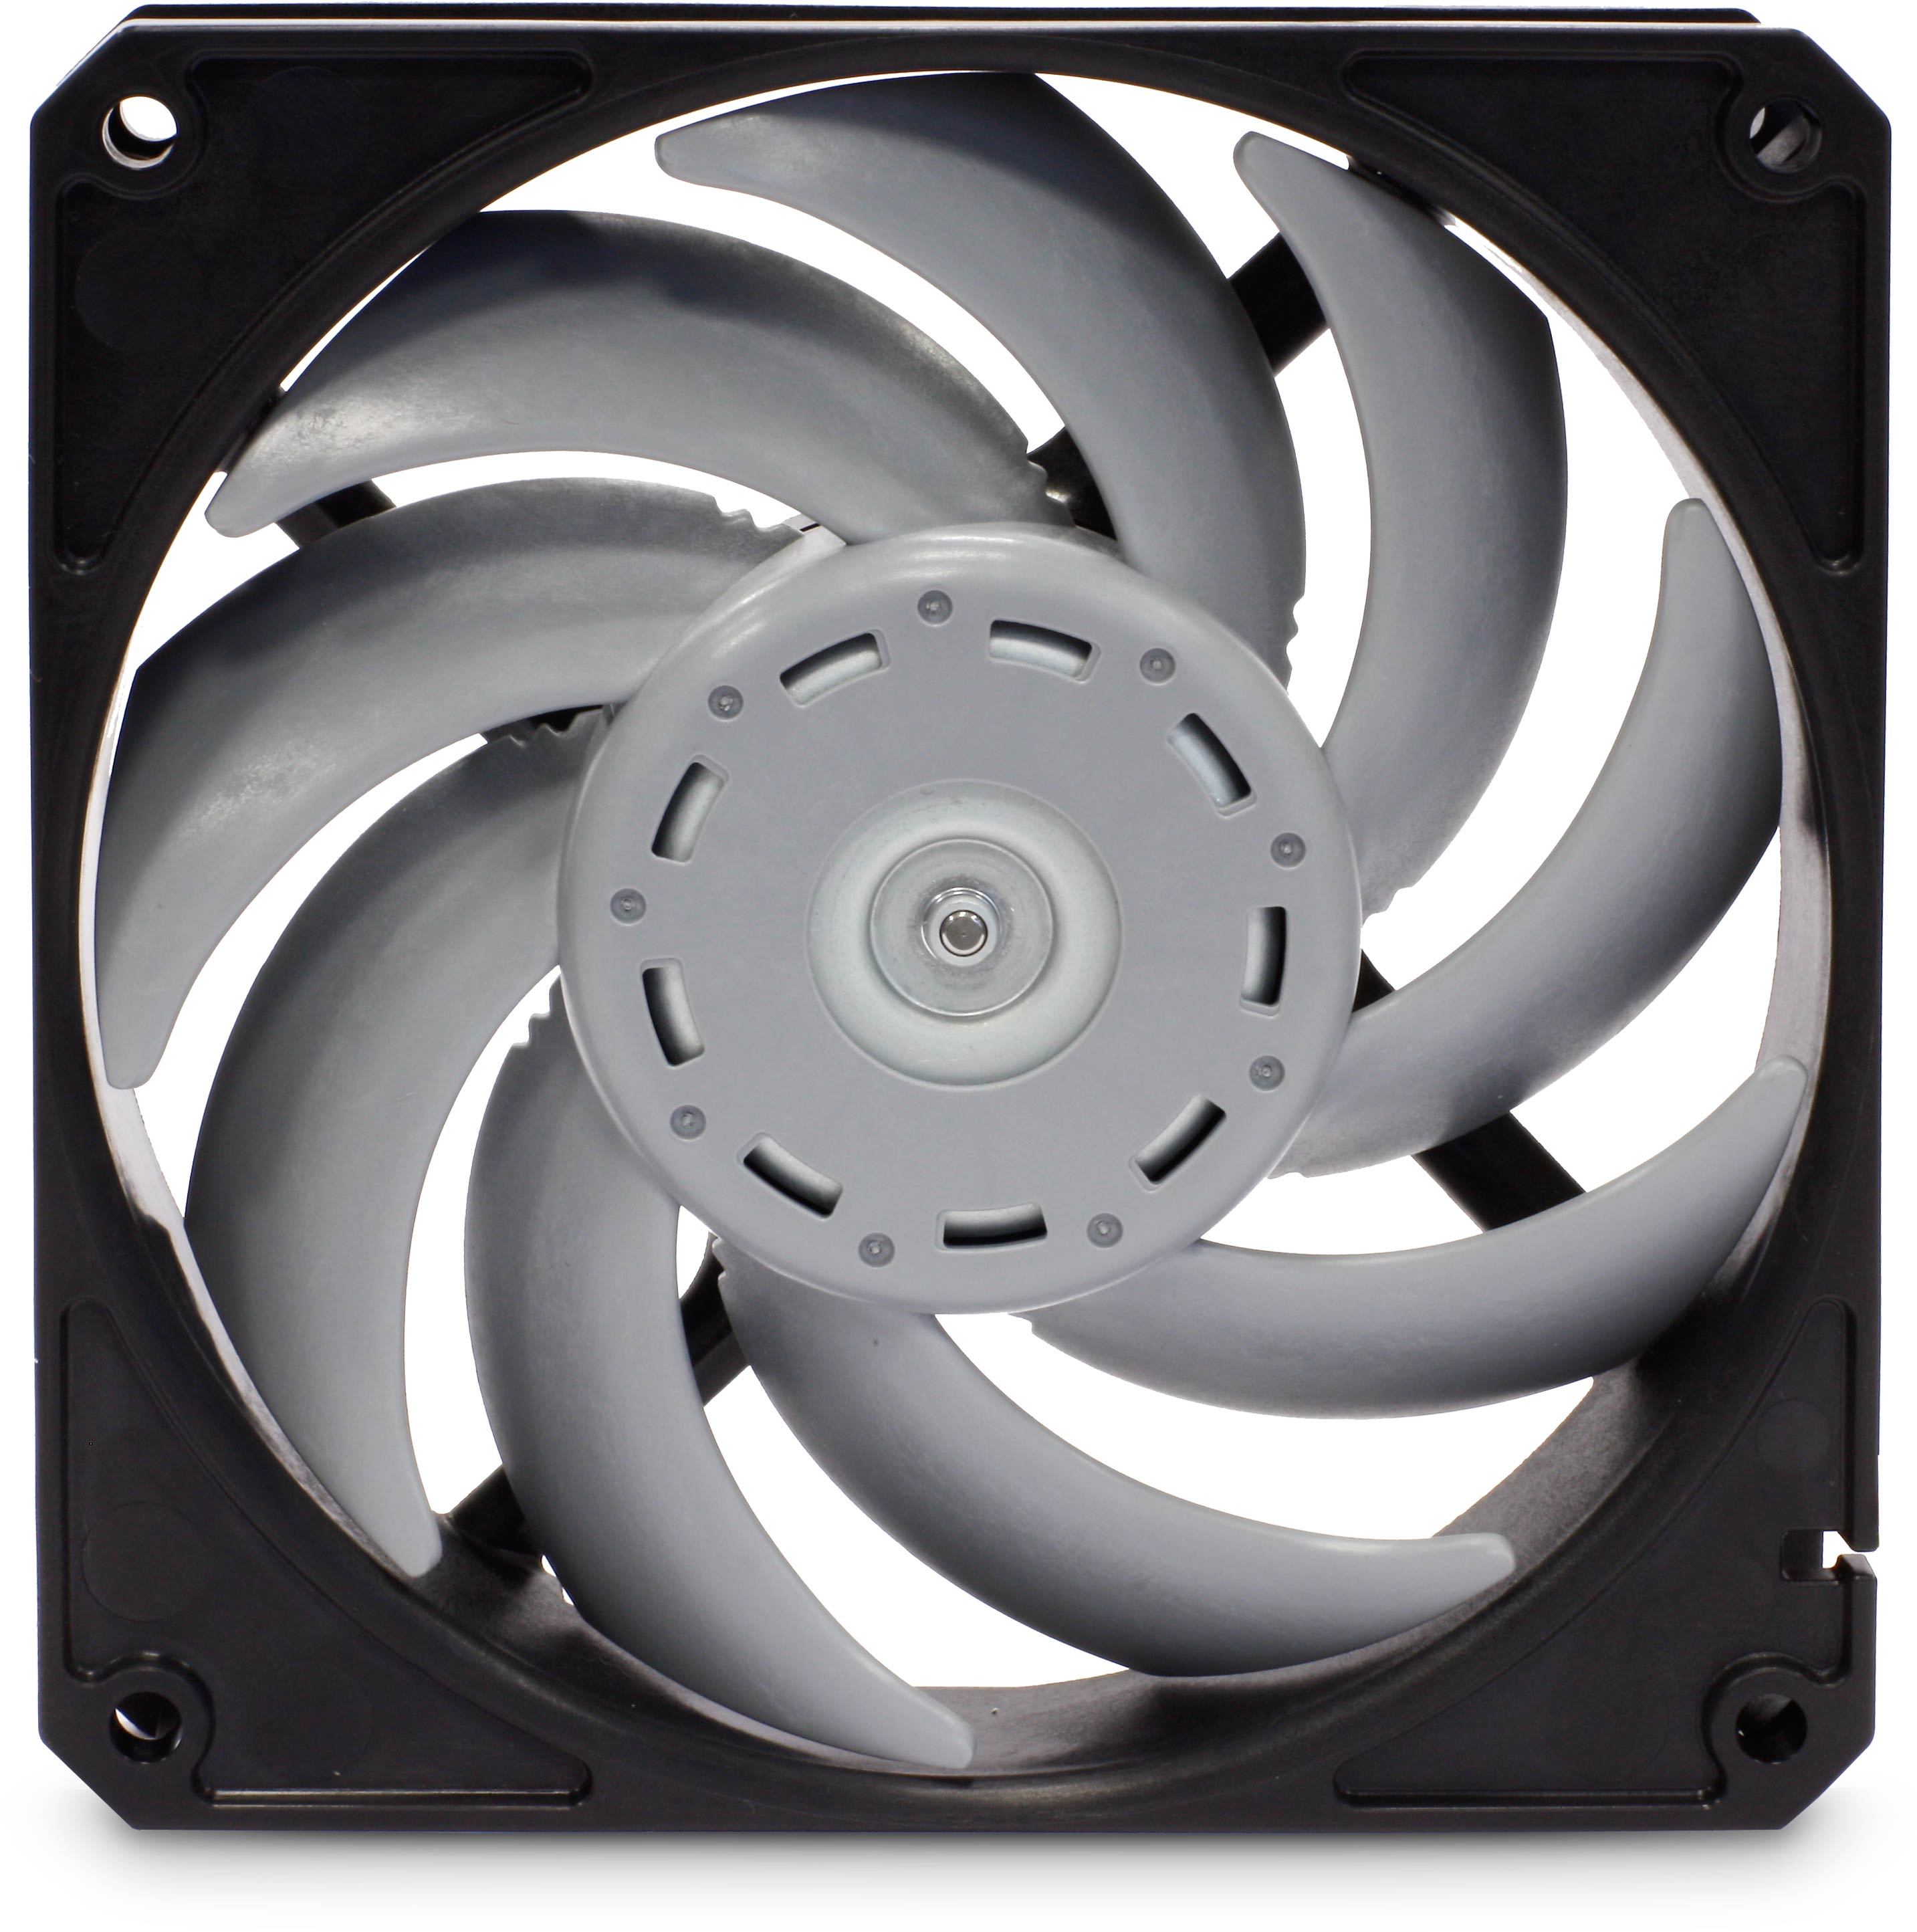 What is a fan 96